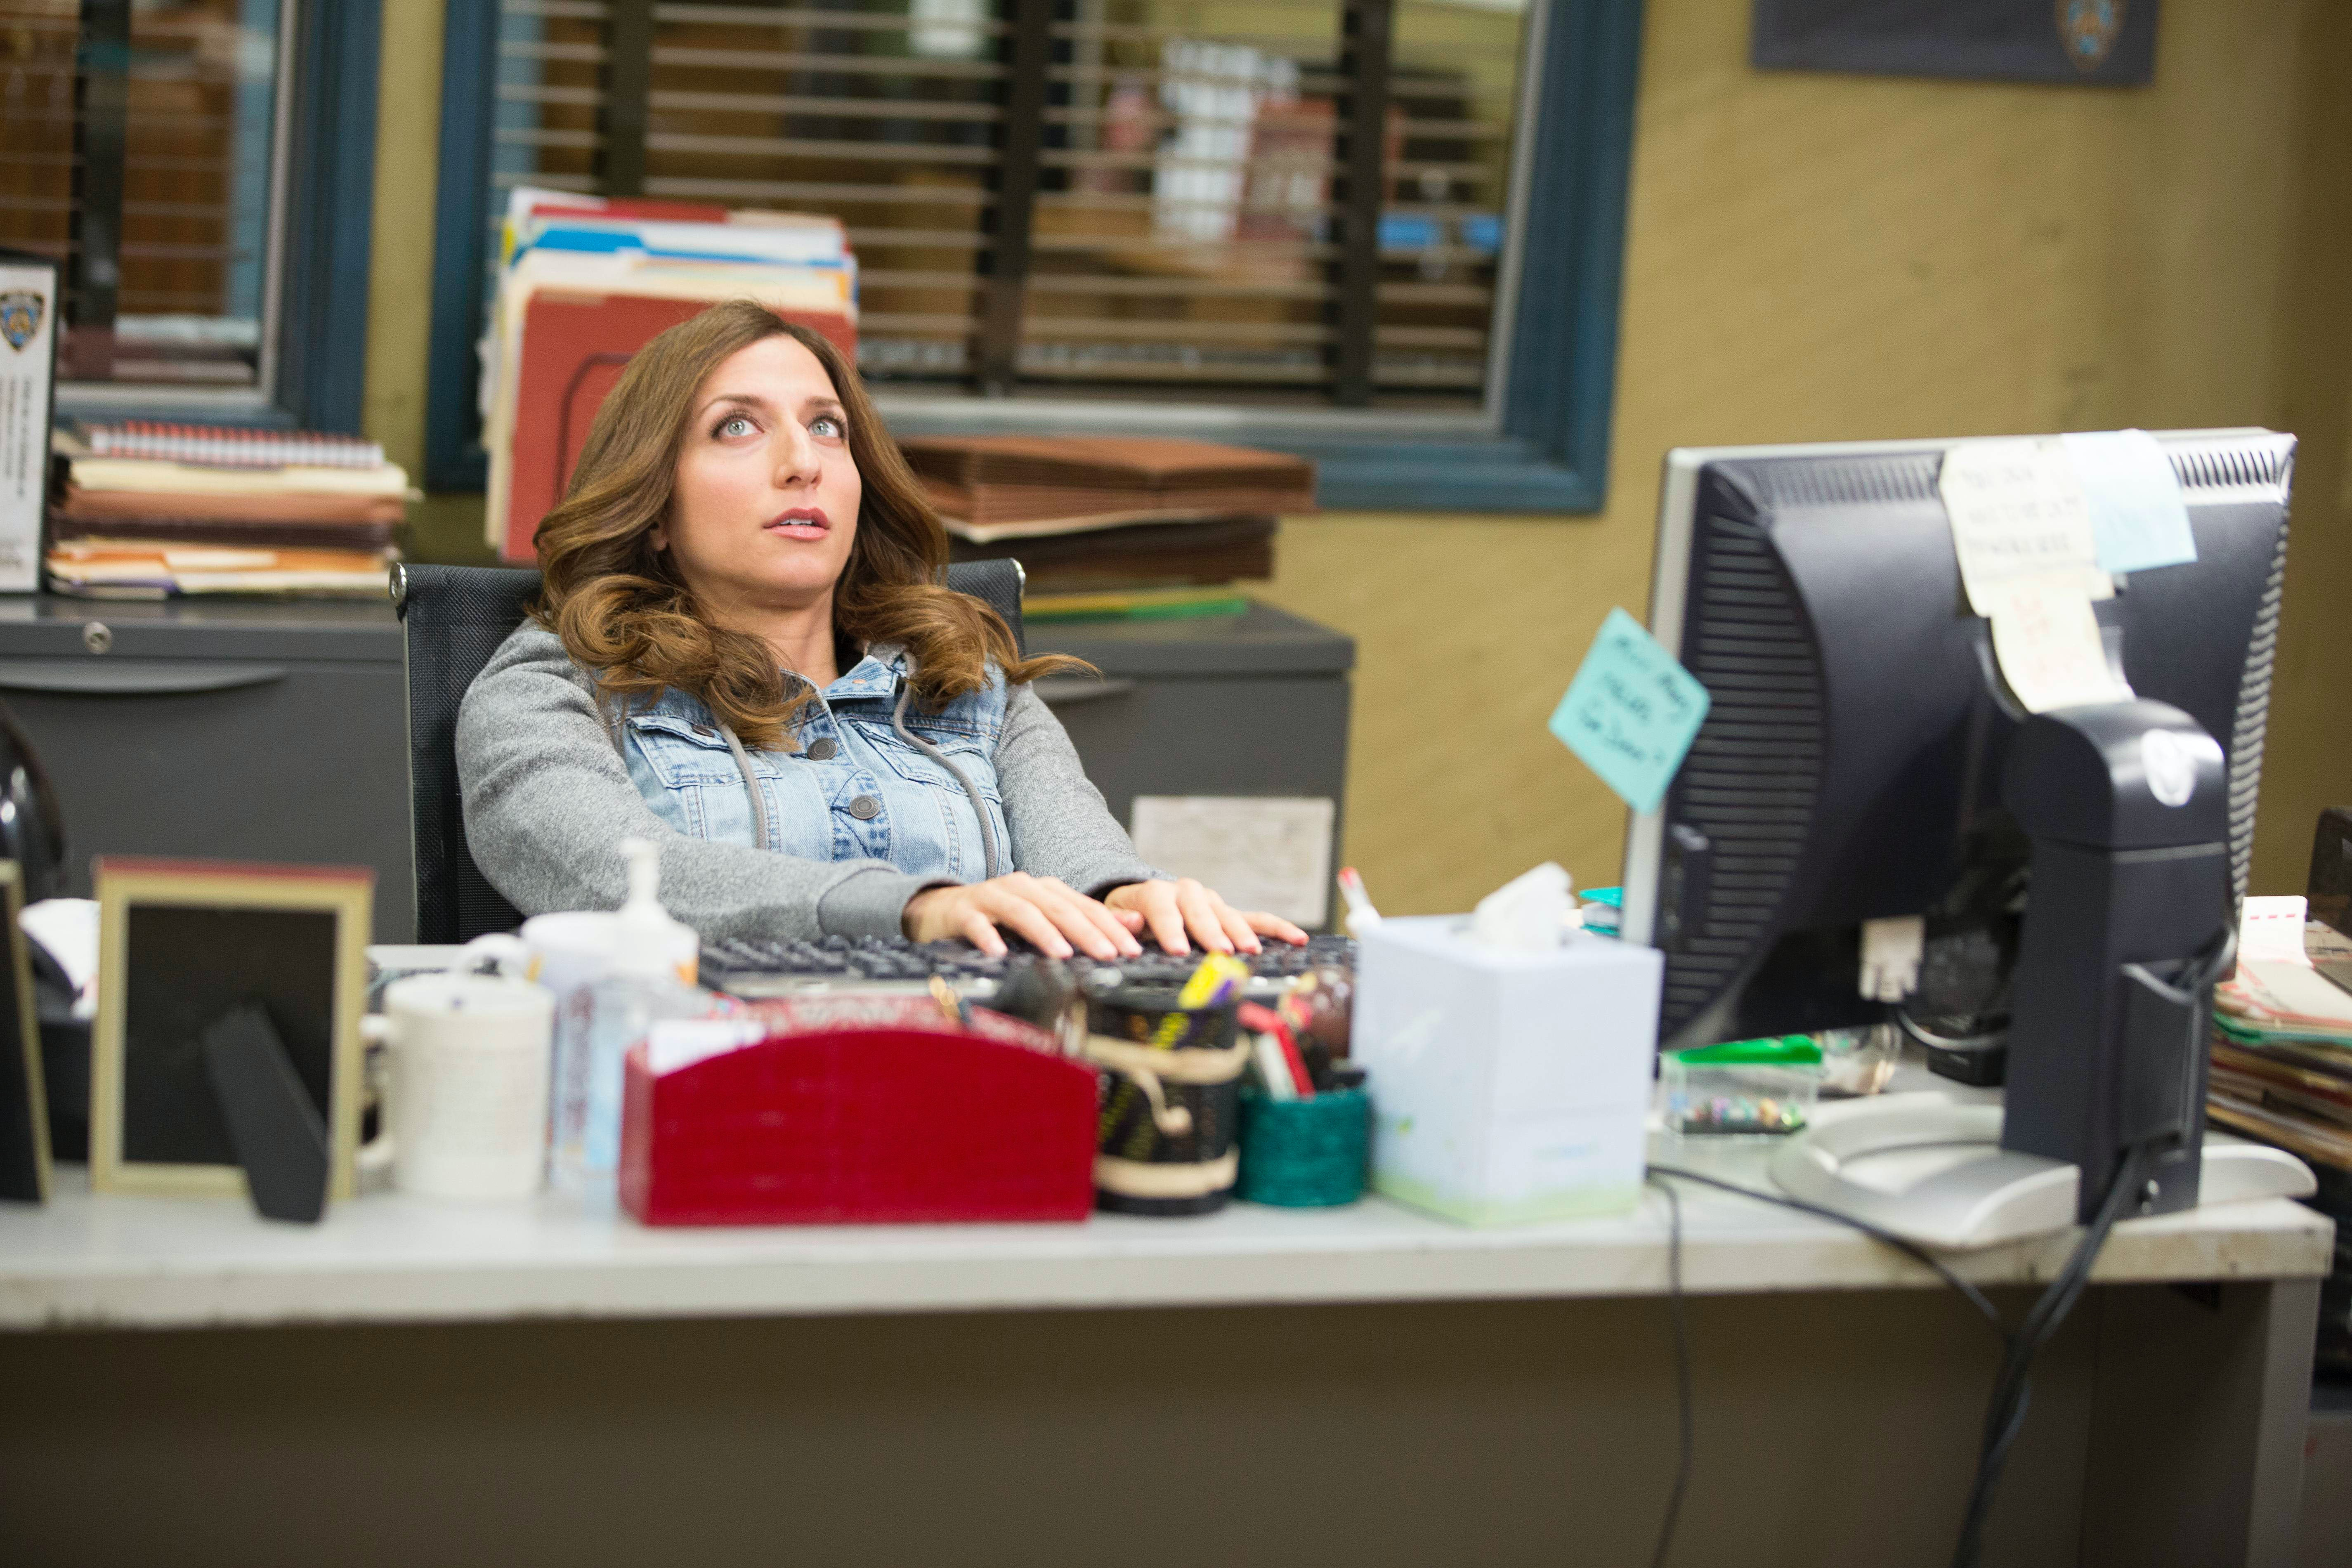 10 Gina Linetti Quotes From 'Brooklyn Nine-Nine' That Prove